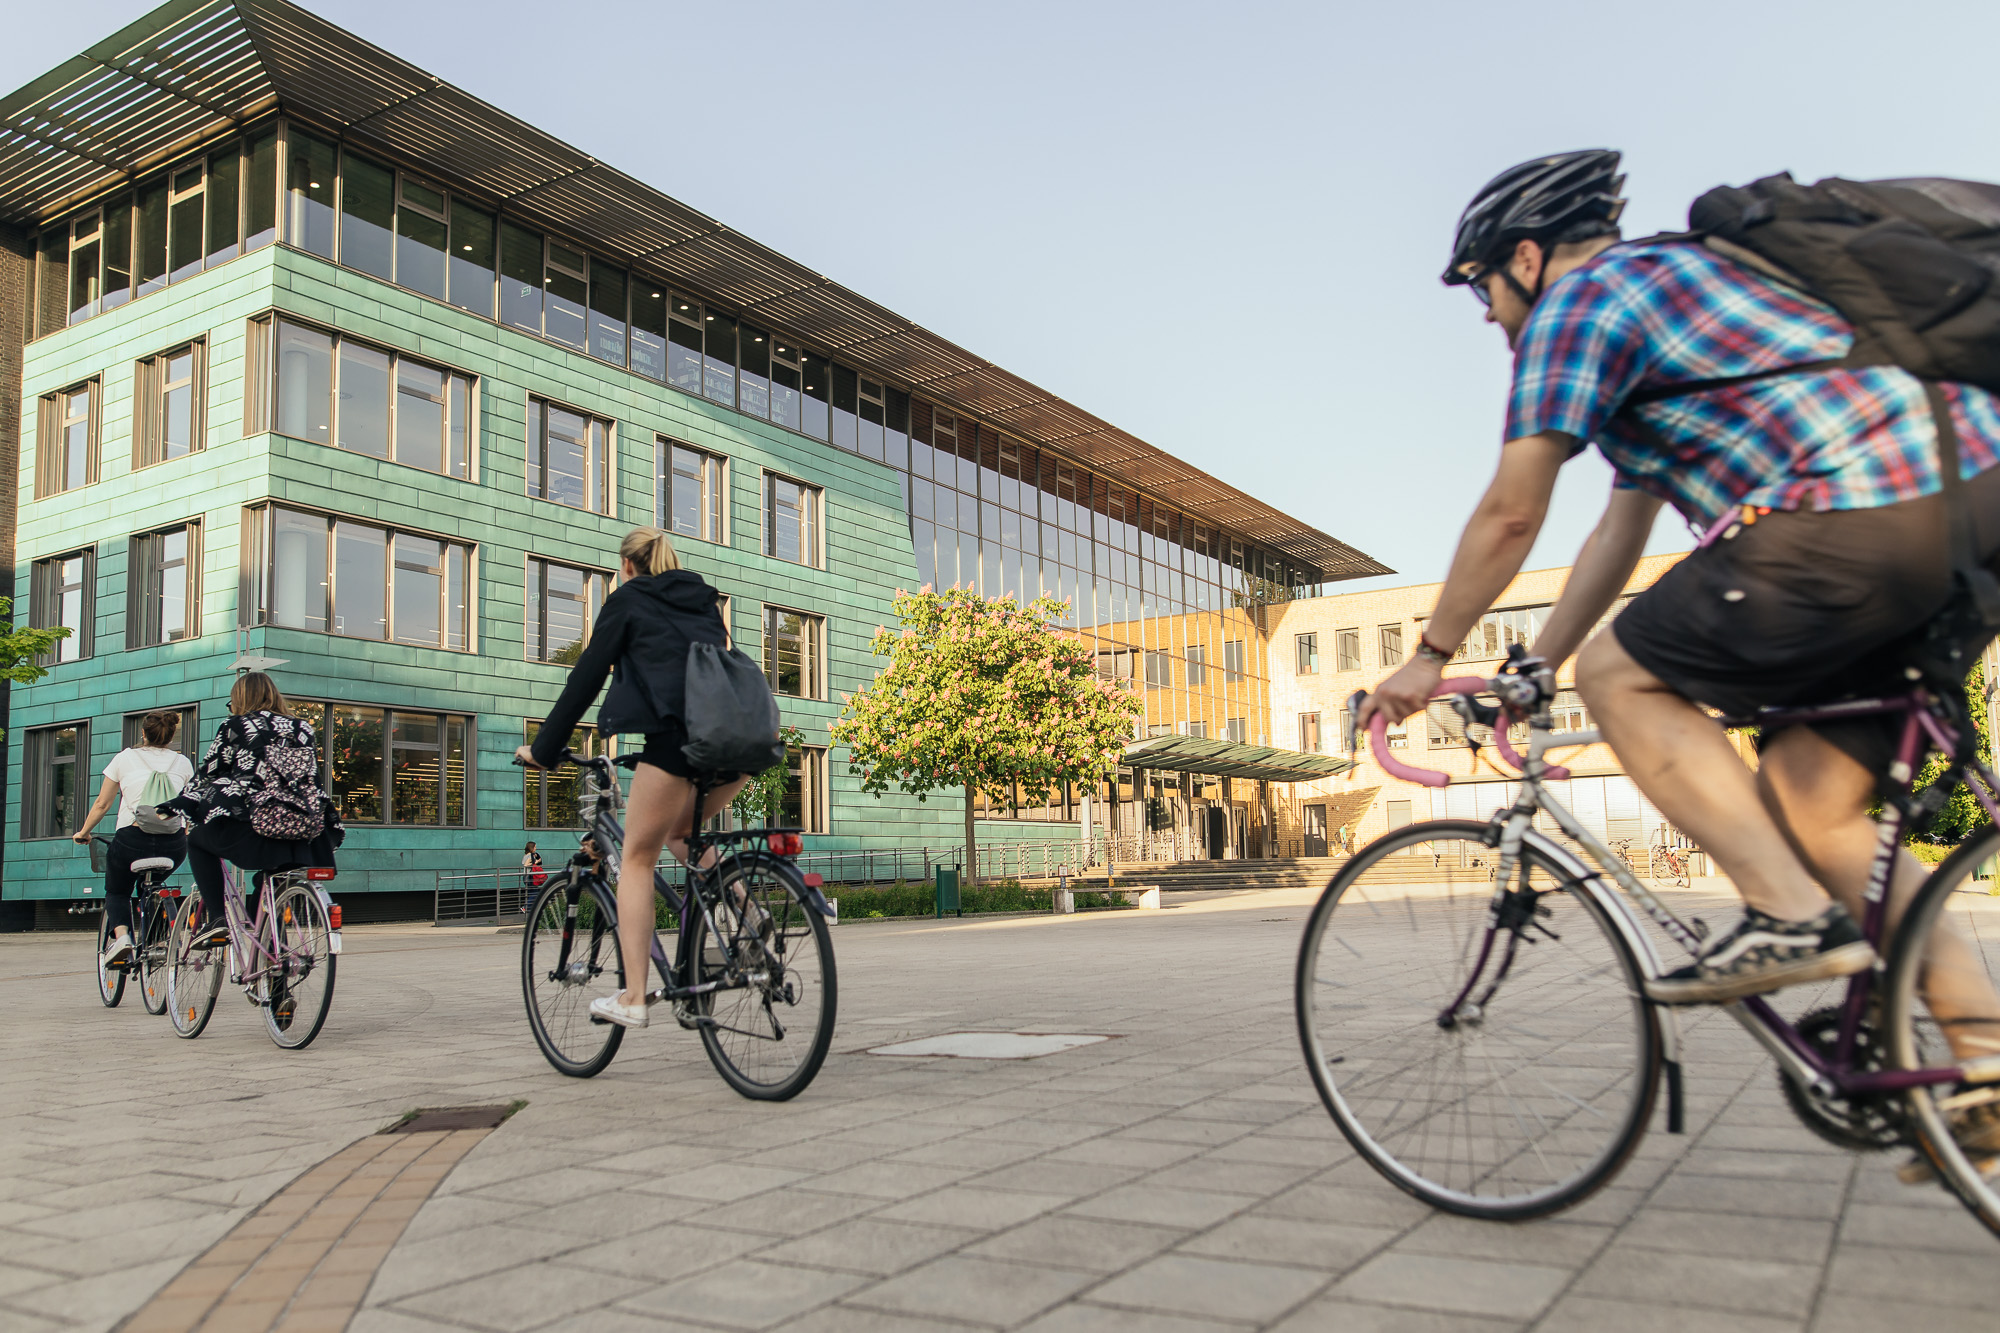 Cyclists in Greifswald - Greifswald is Cycling Capital